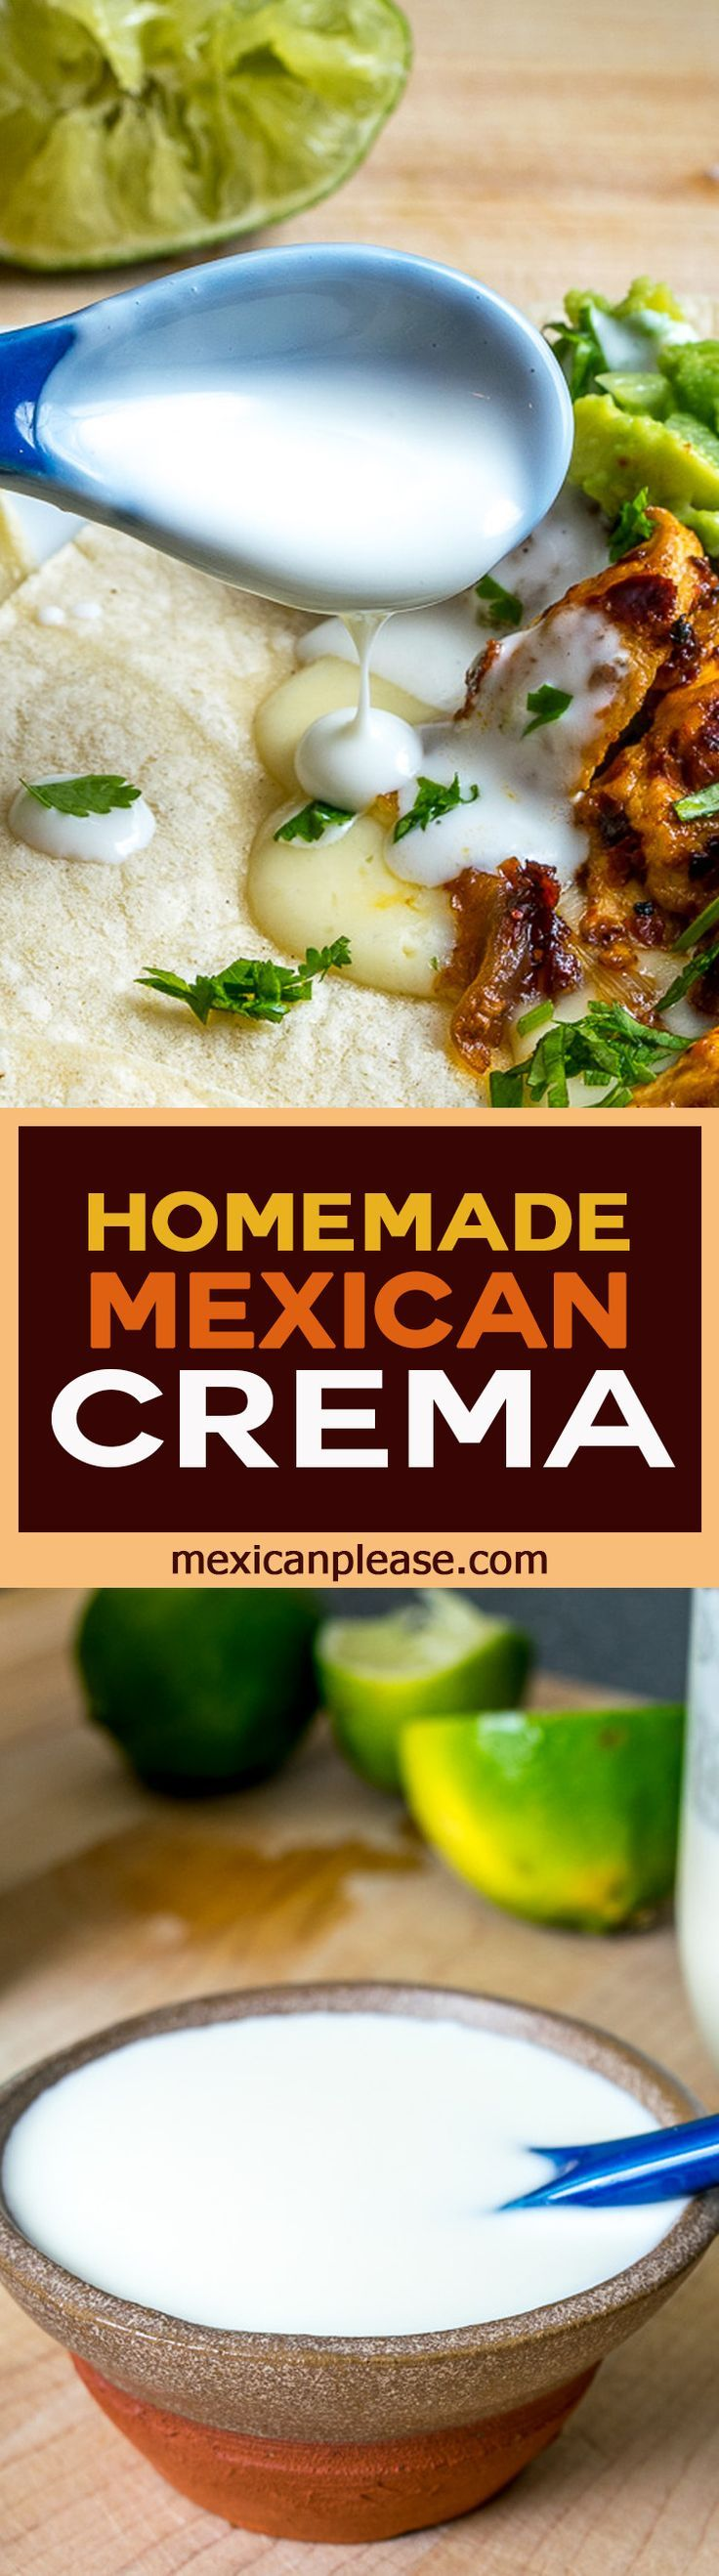 O' Mexican Crema where art thou?  If you're tired of searching for Mexican Crema in the markets here's the easiest way to make your own at home (also includes some quick and dirty substitutes) http://mexicanplease.com